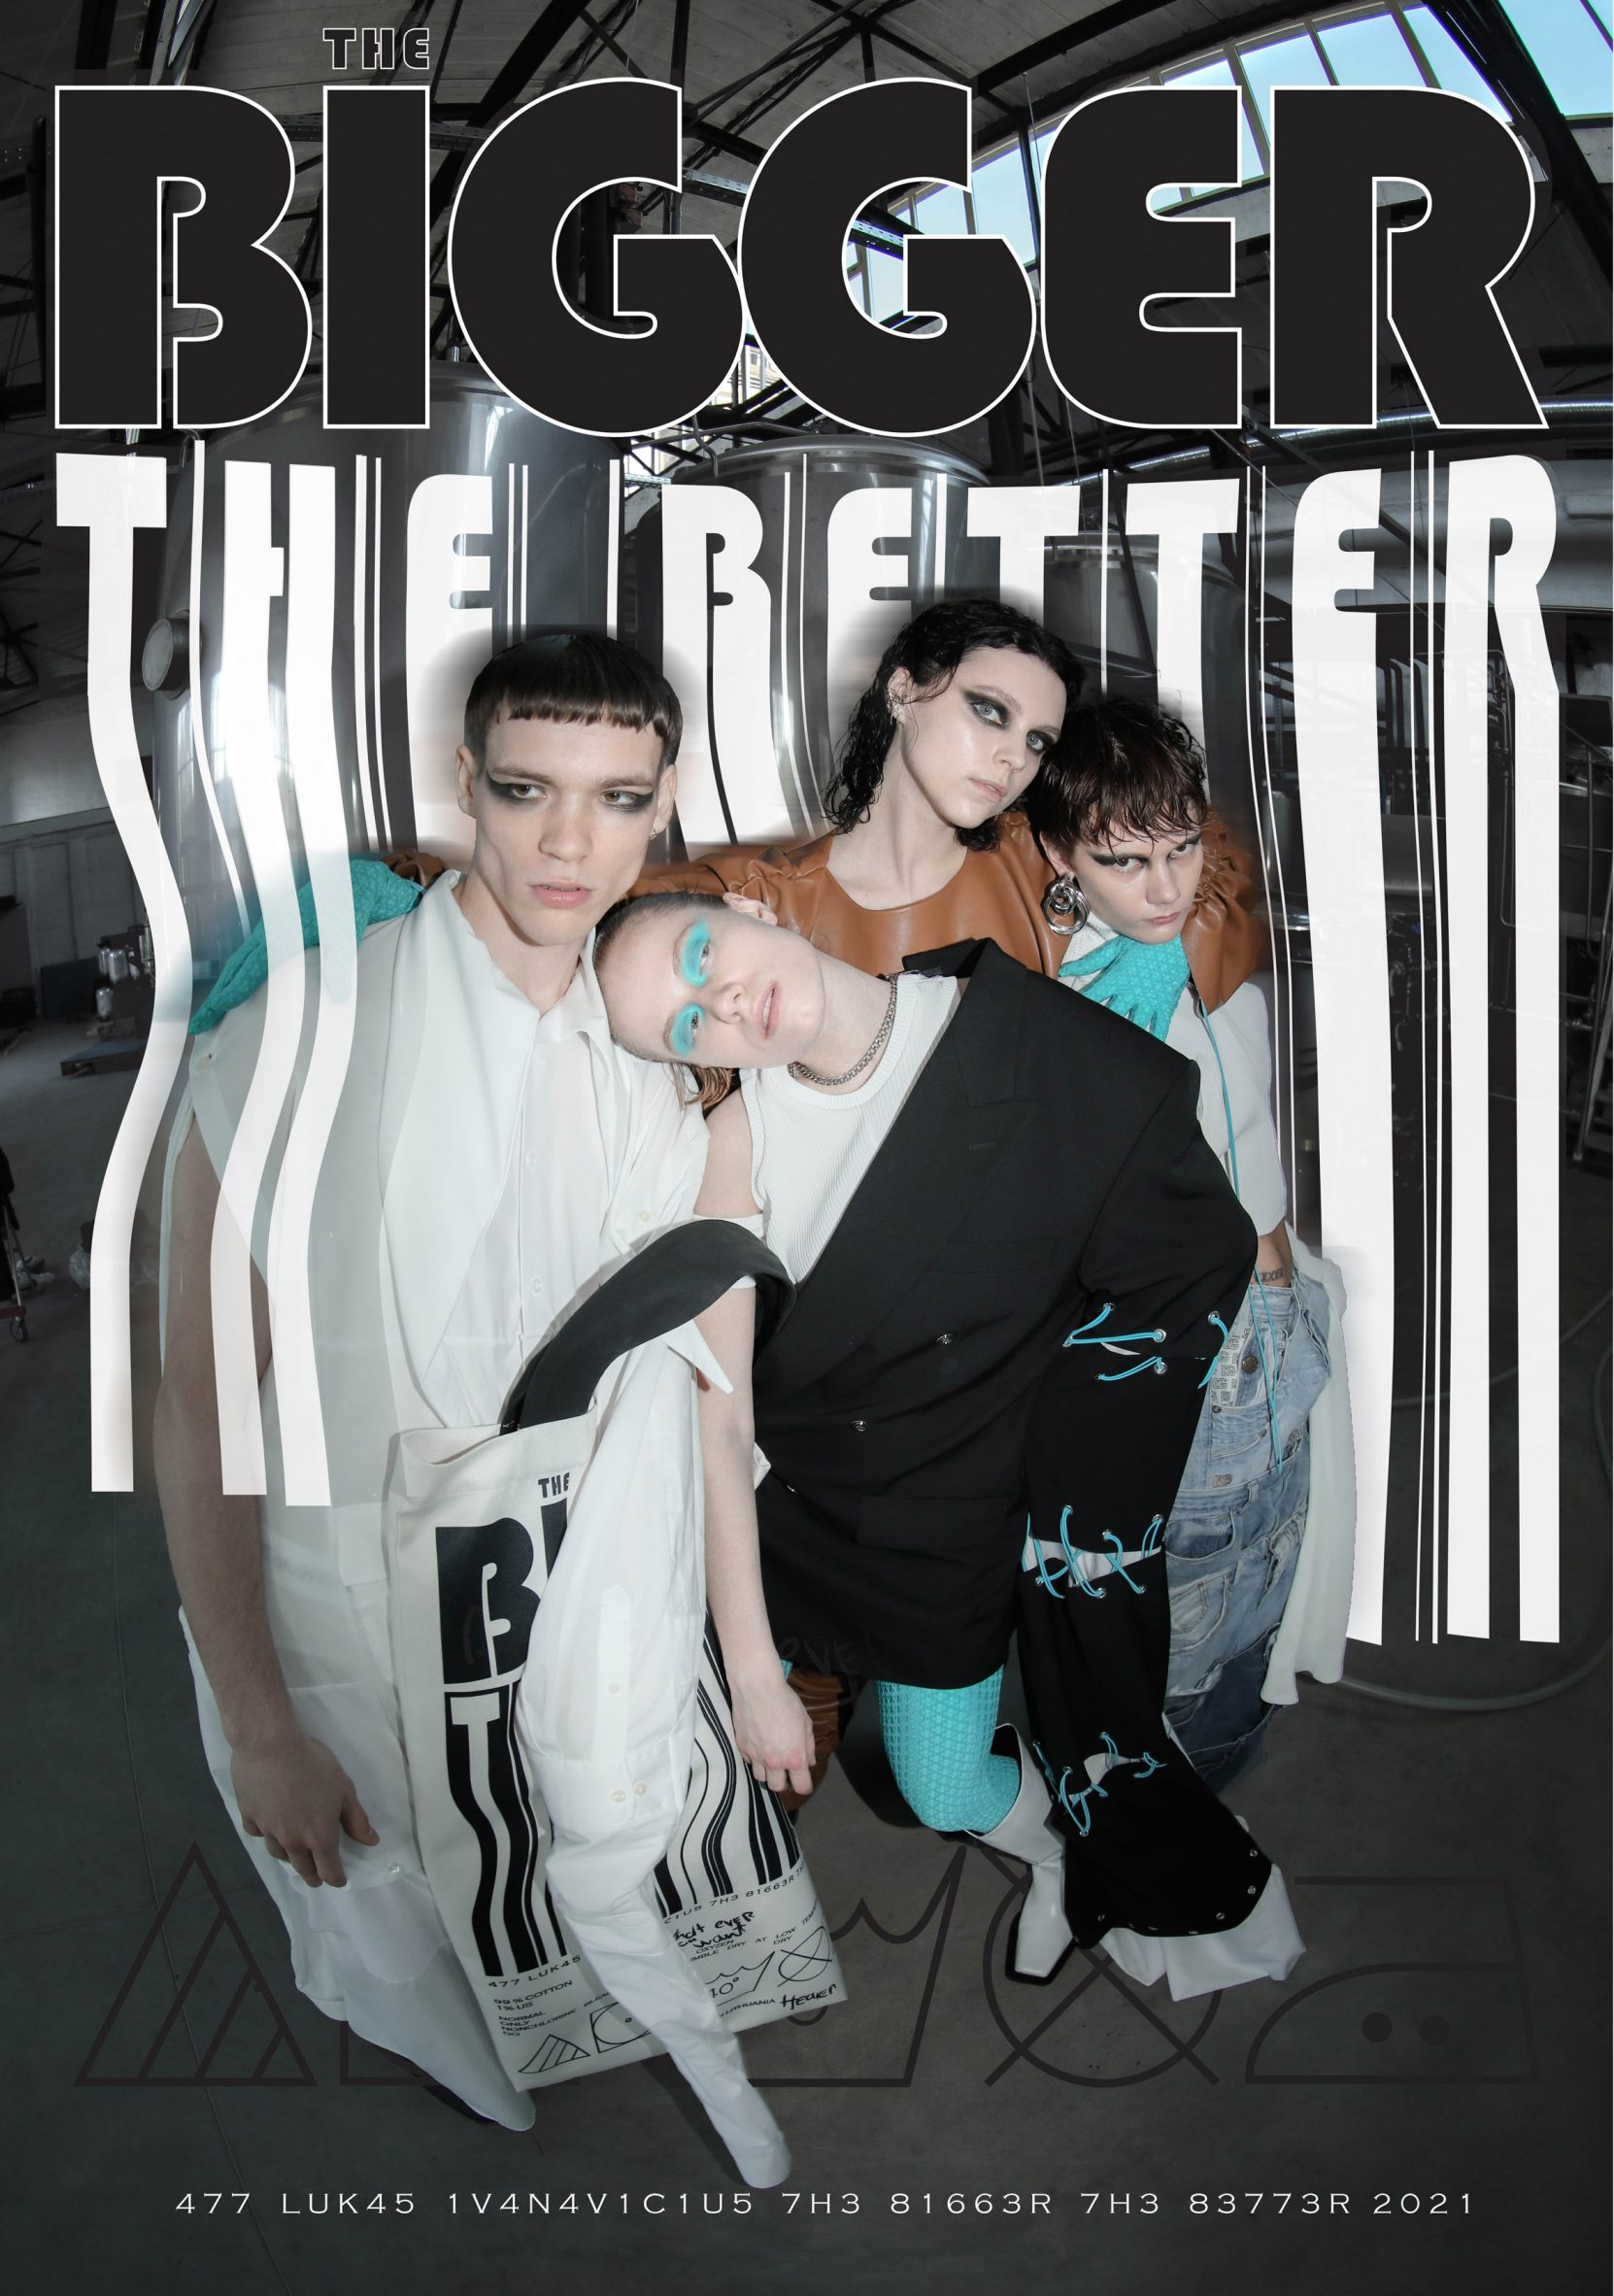 The Bigger The Better fashion collection by Lukas Ivanavičius